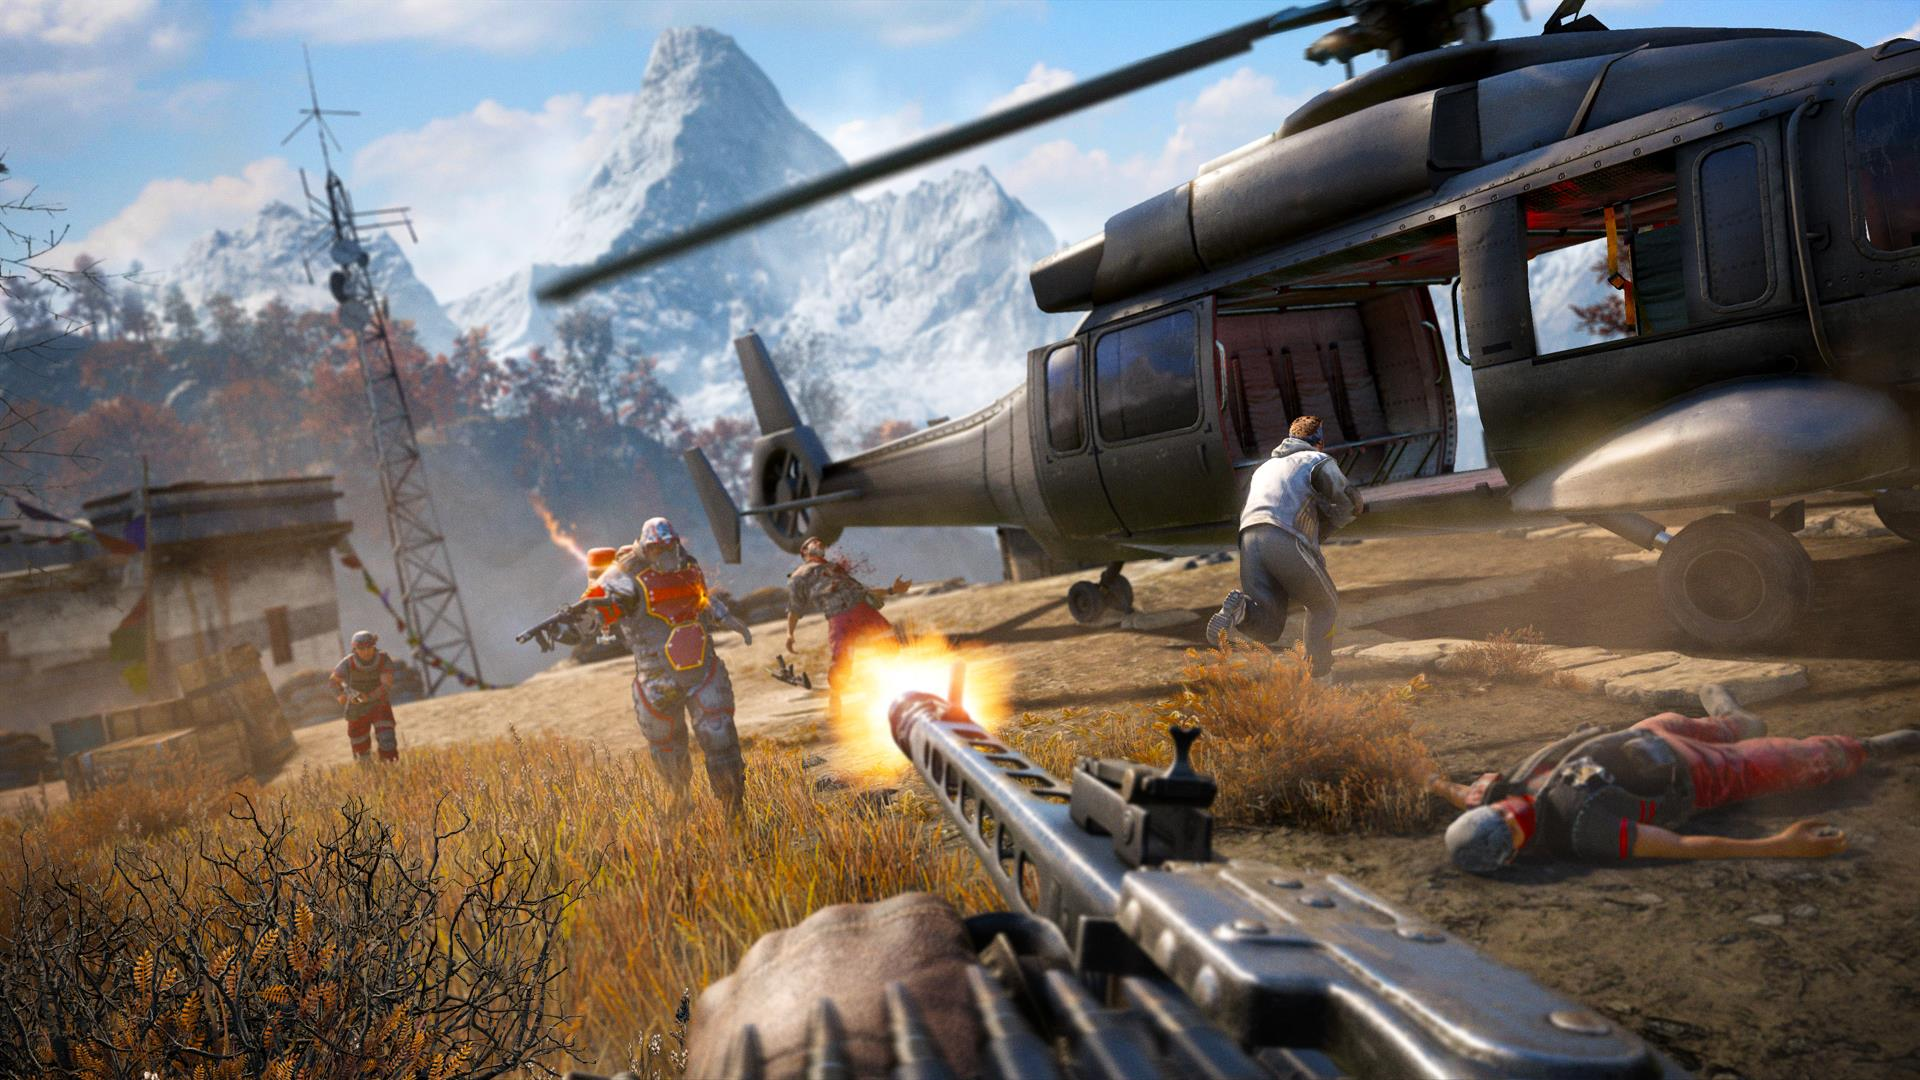 Far Cry 4s Escape From Durgesh Prison DLC Is Now